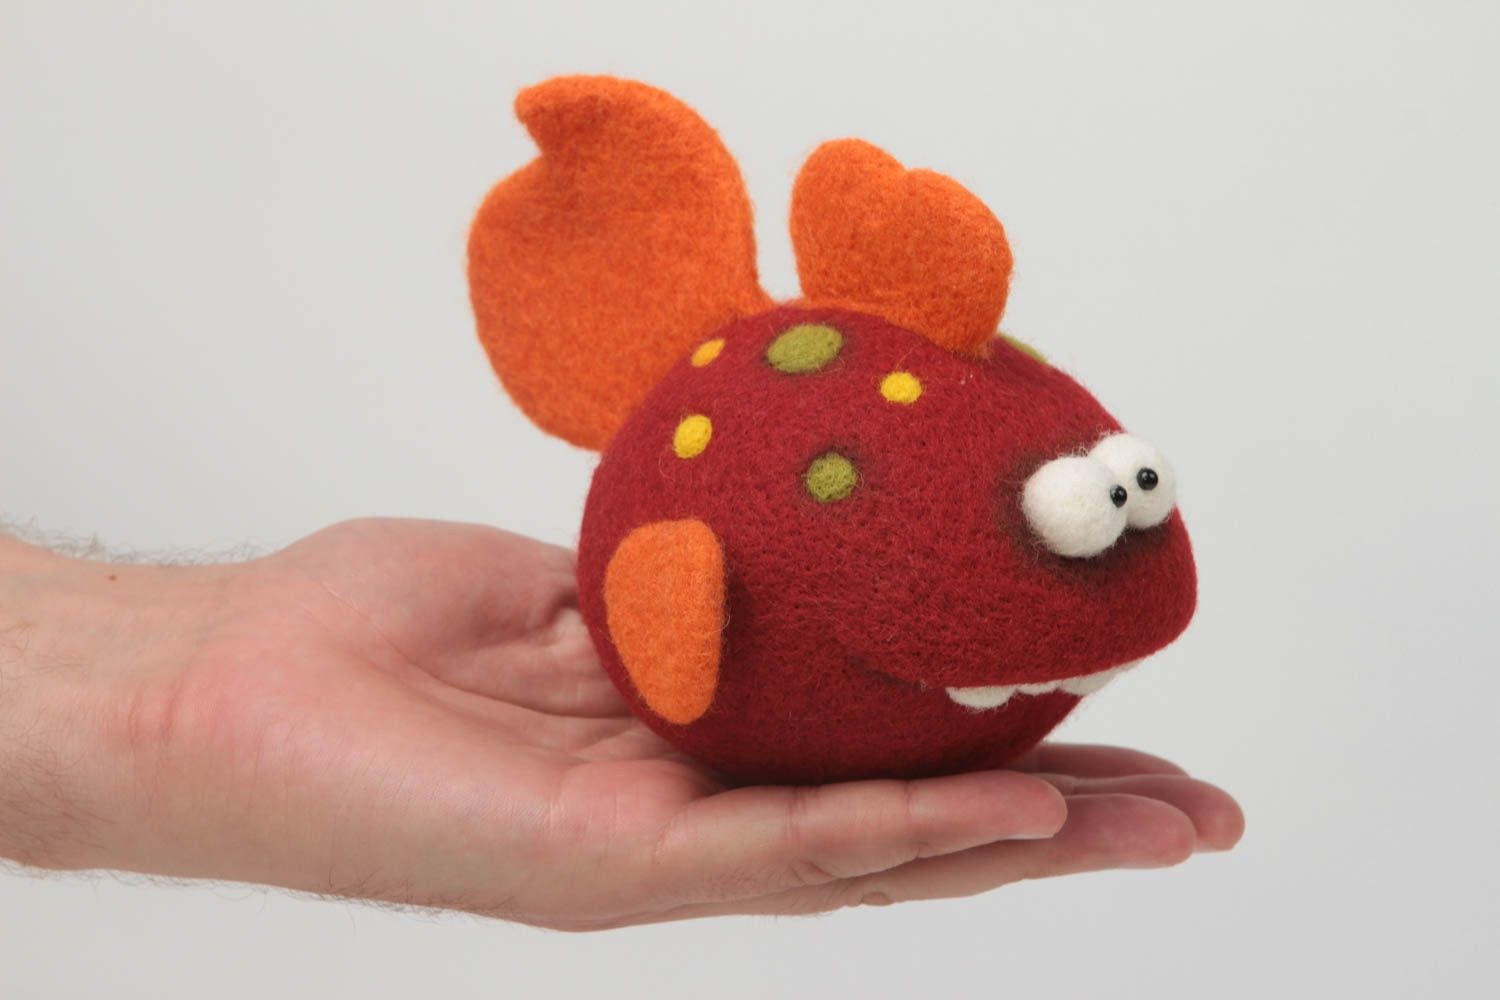 felted toys Handmade toy unusual fish toy designer toy for baby interior toy decor ideas - MADEheart.com